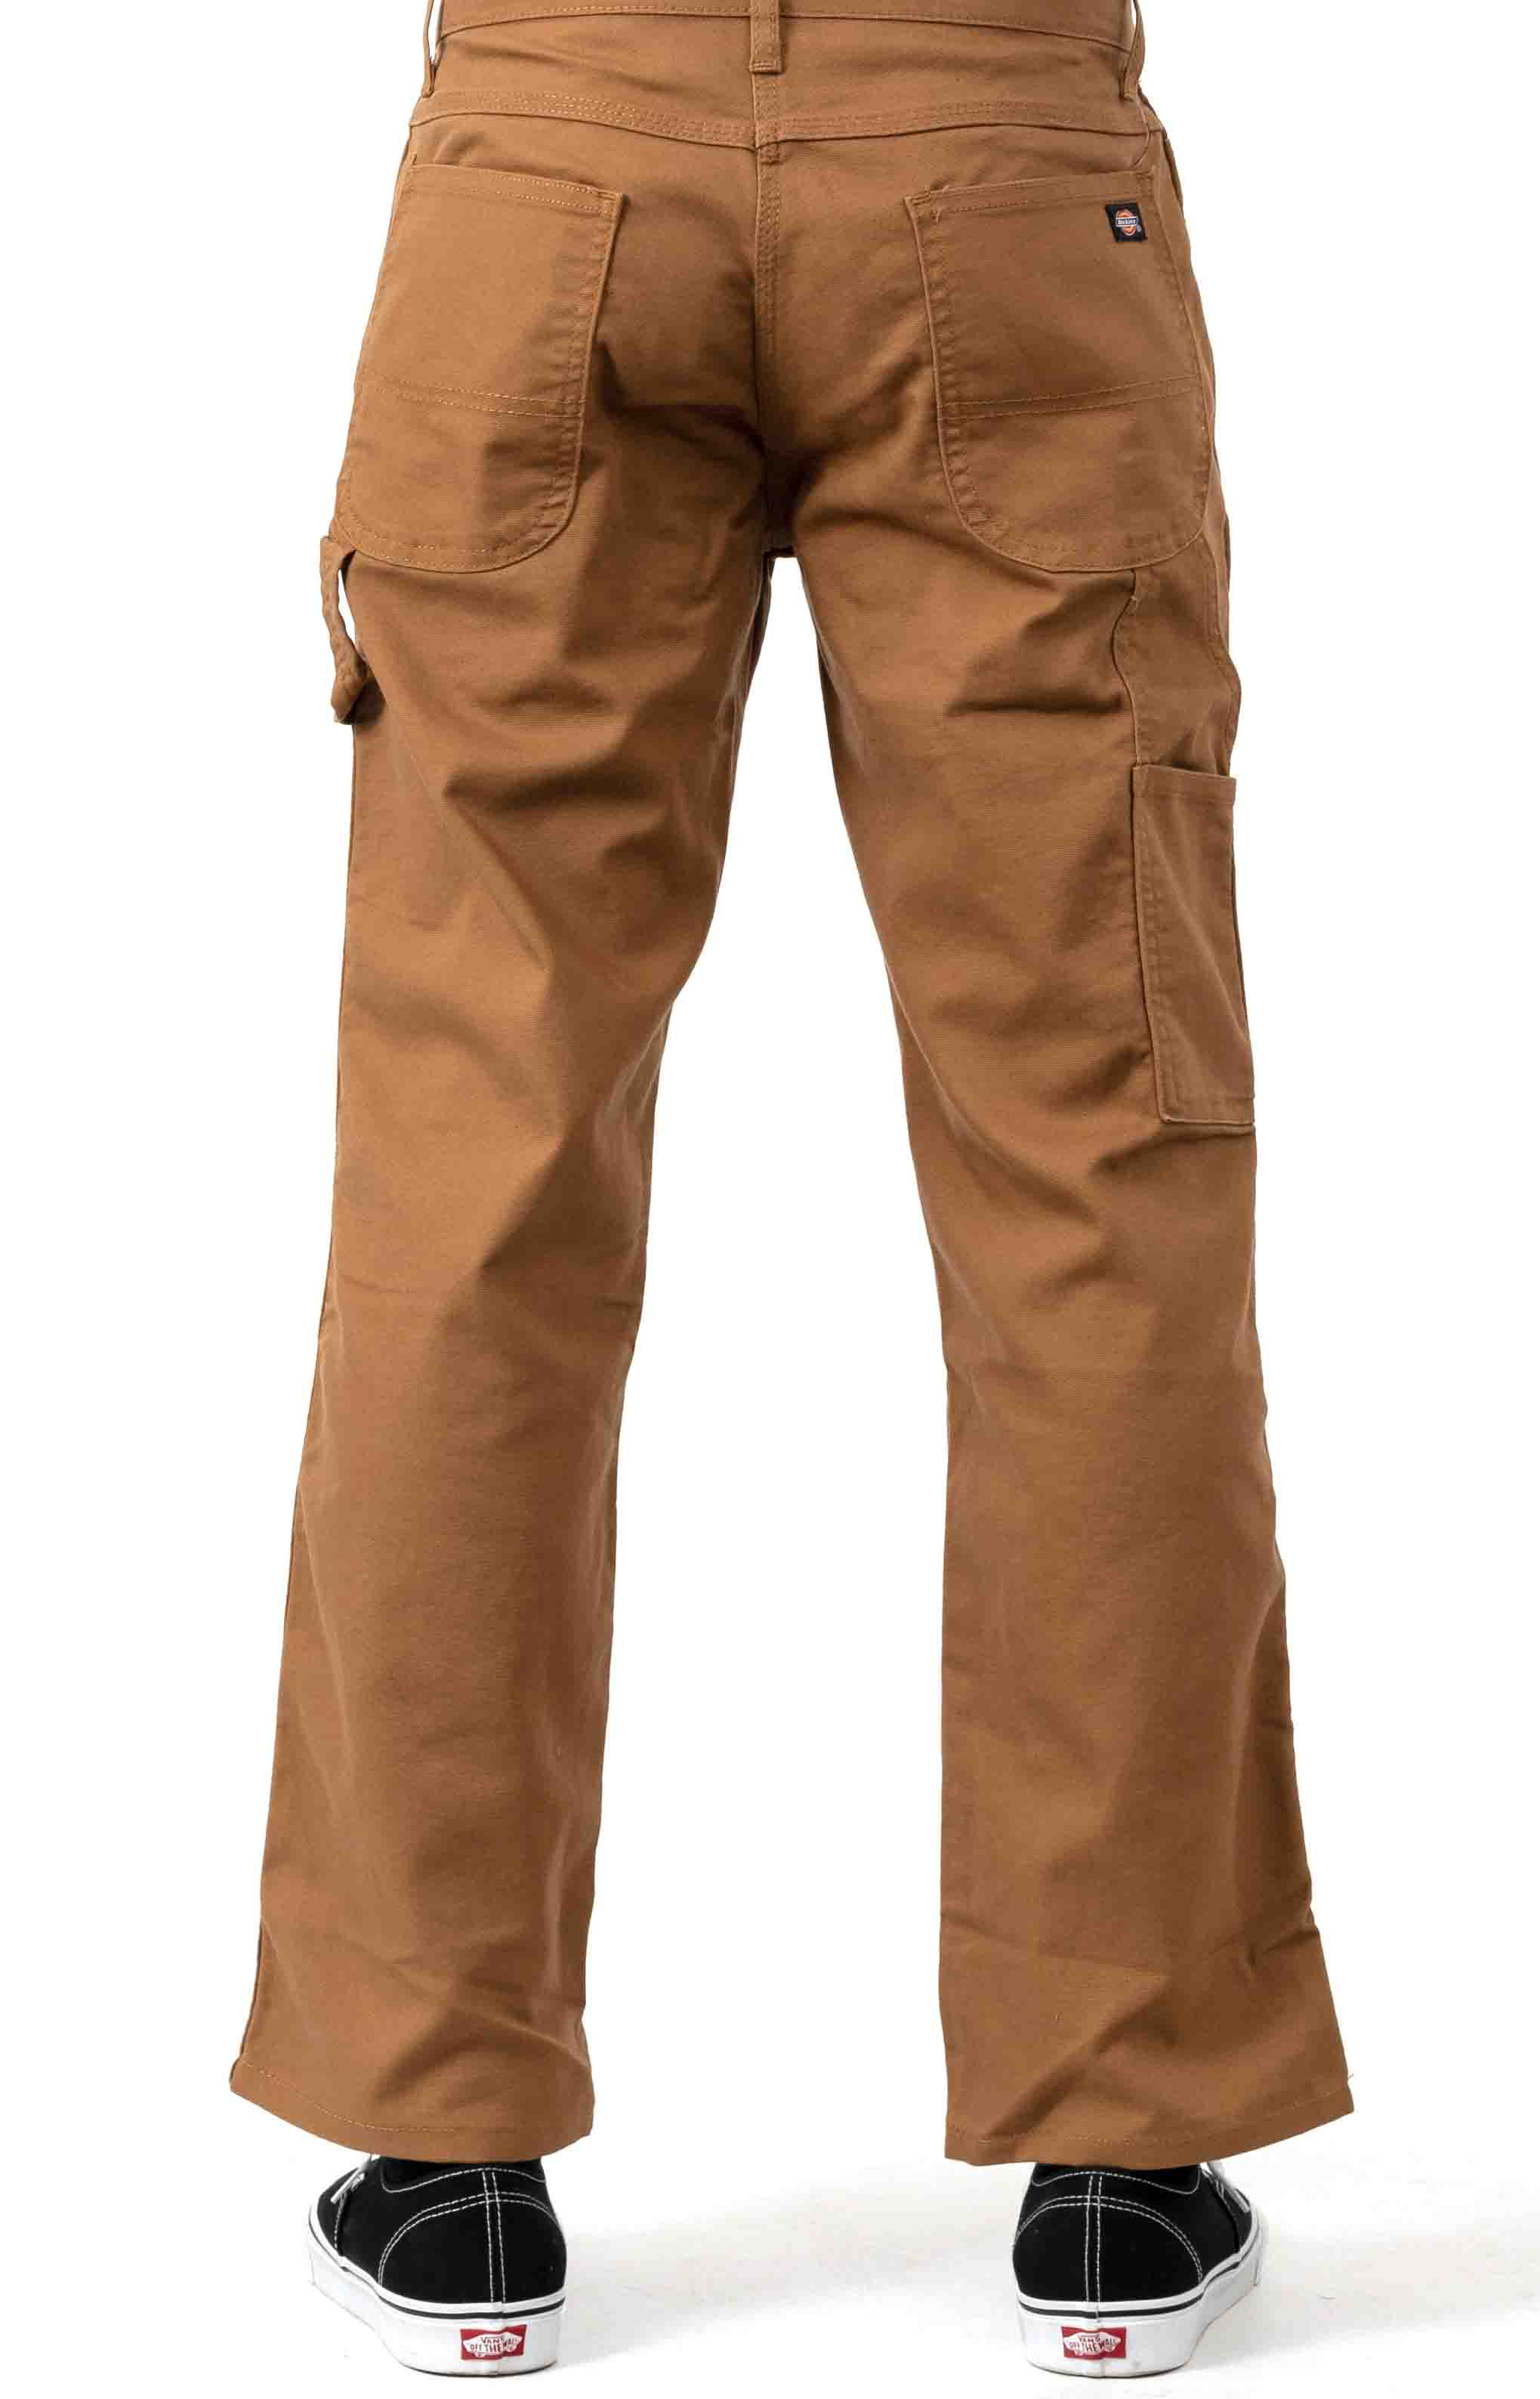 (DP901SBD) FLEX Relaxed Fit Tough Max Duck Carpenter Pants - Stonewashed Brown Duck 3